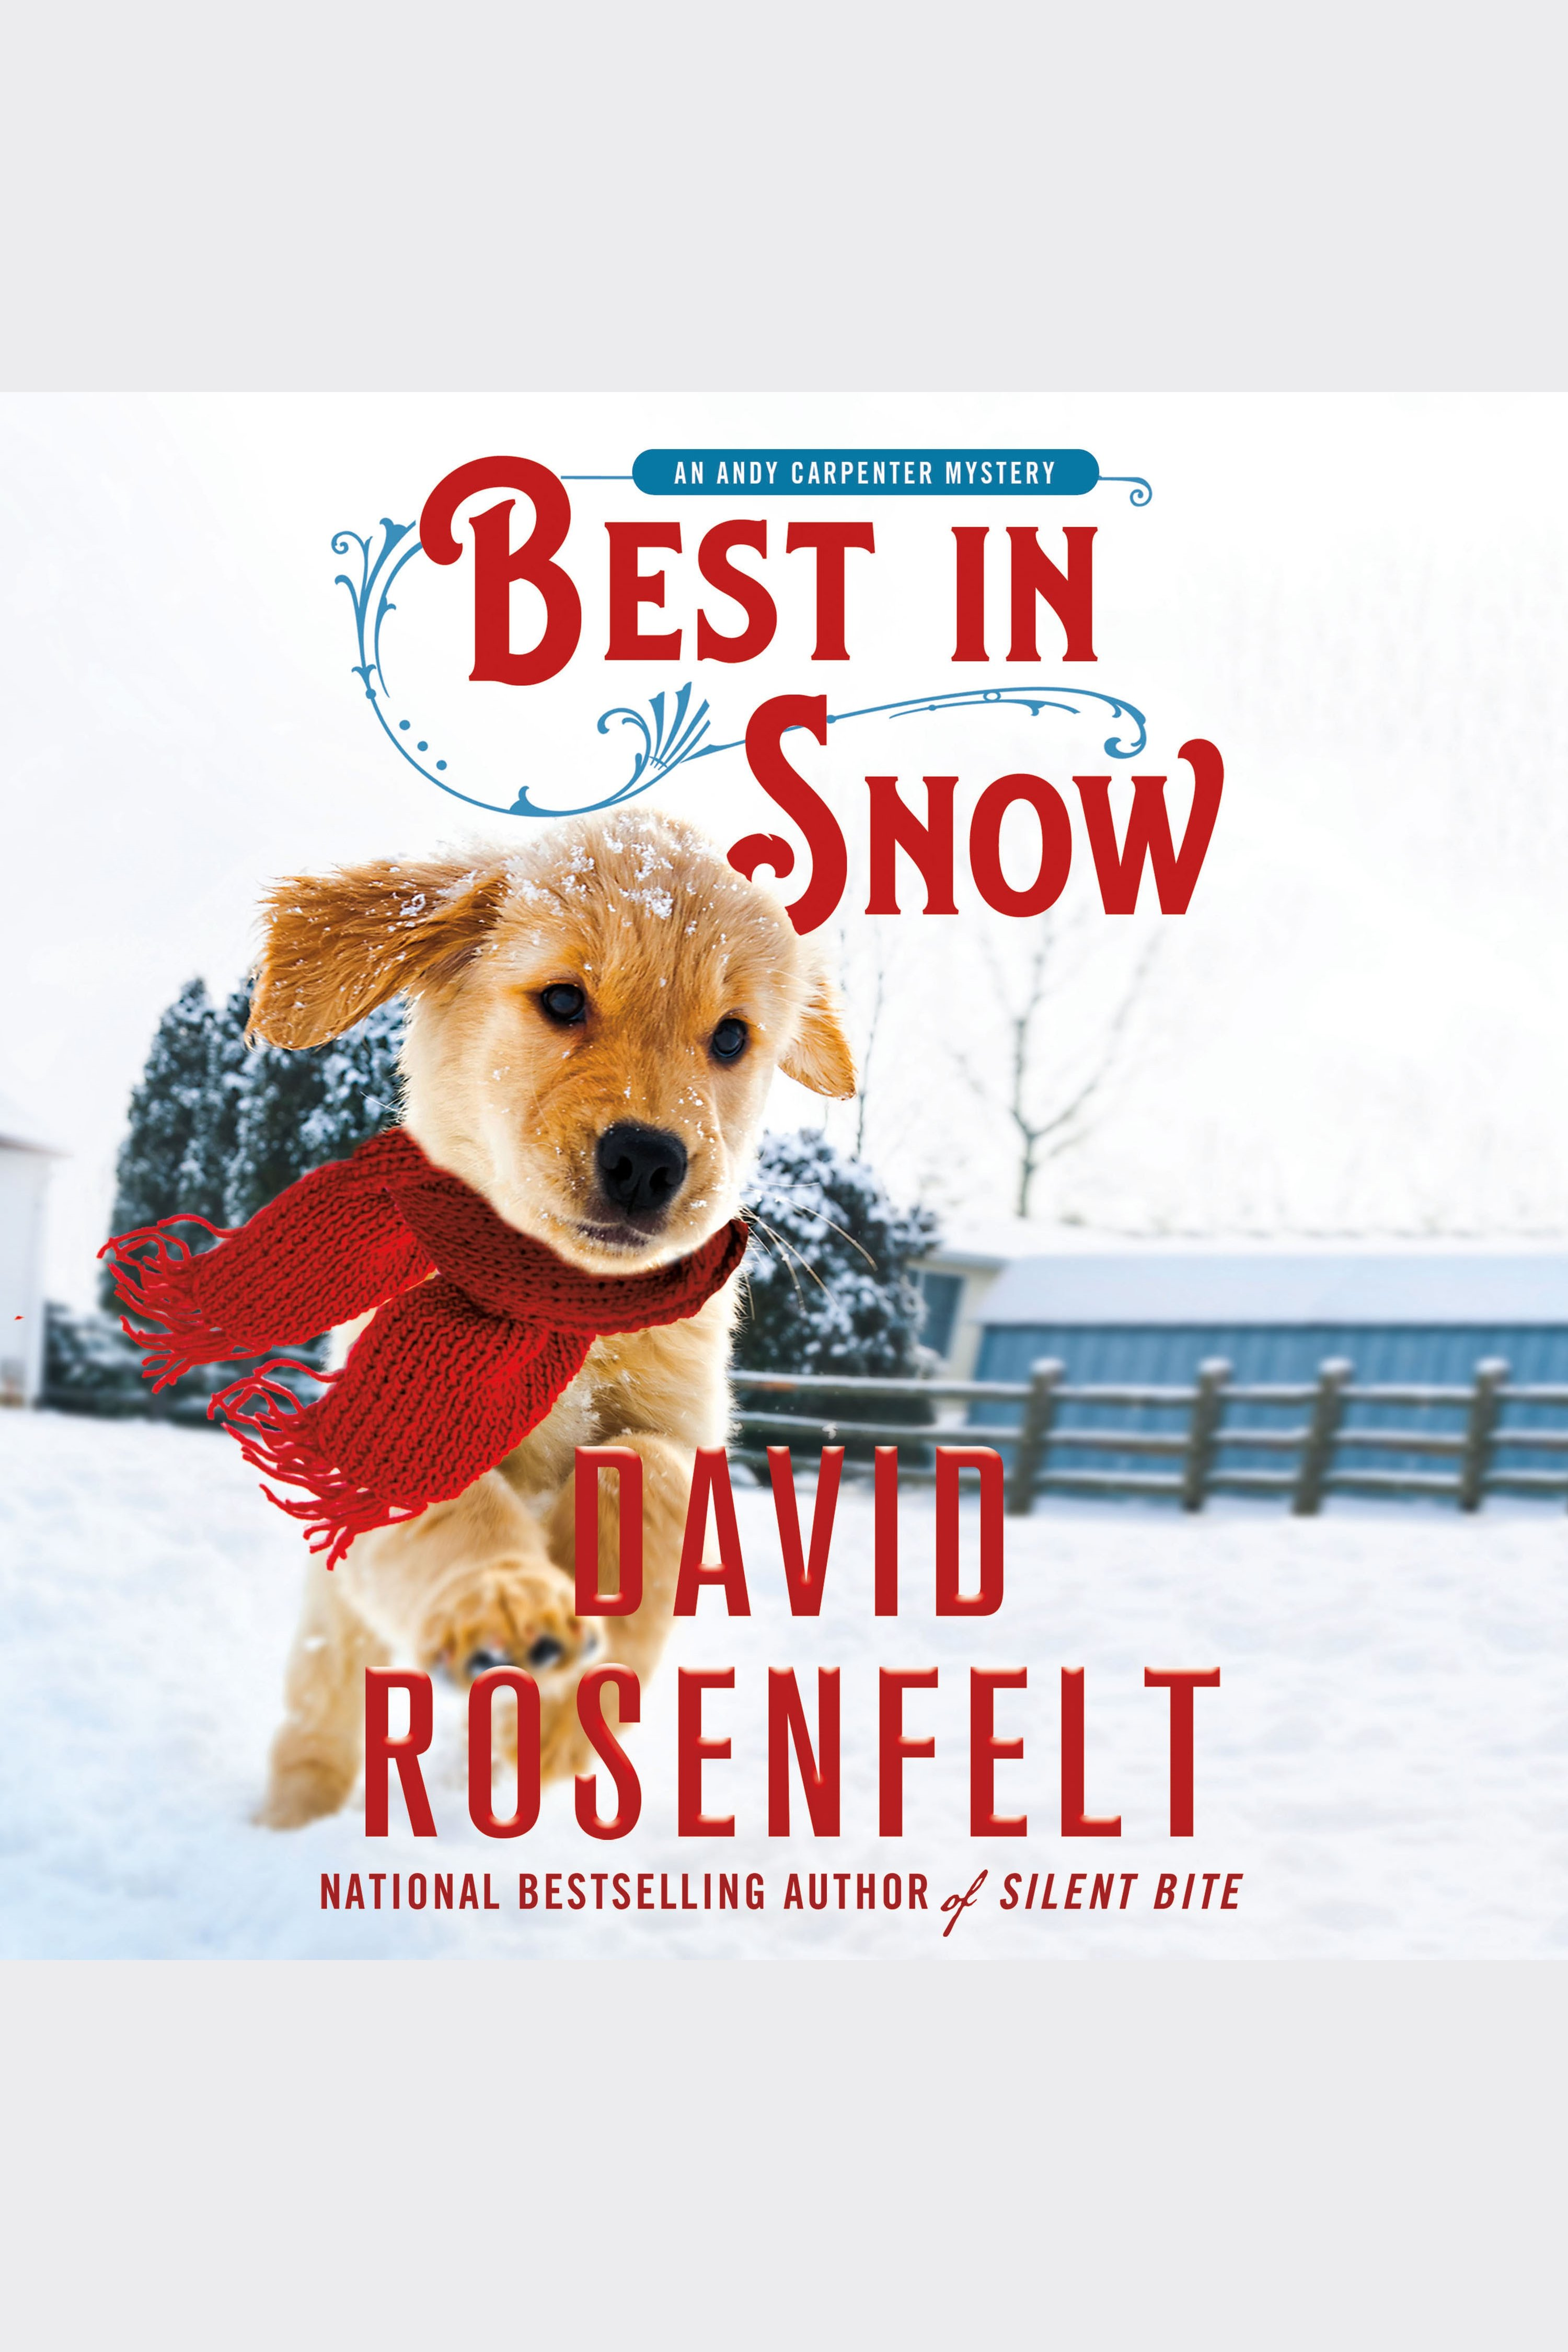 Best in Snow An Andy Carpenter Mystery